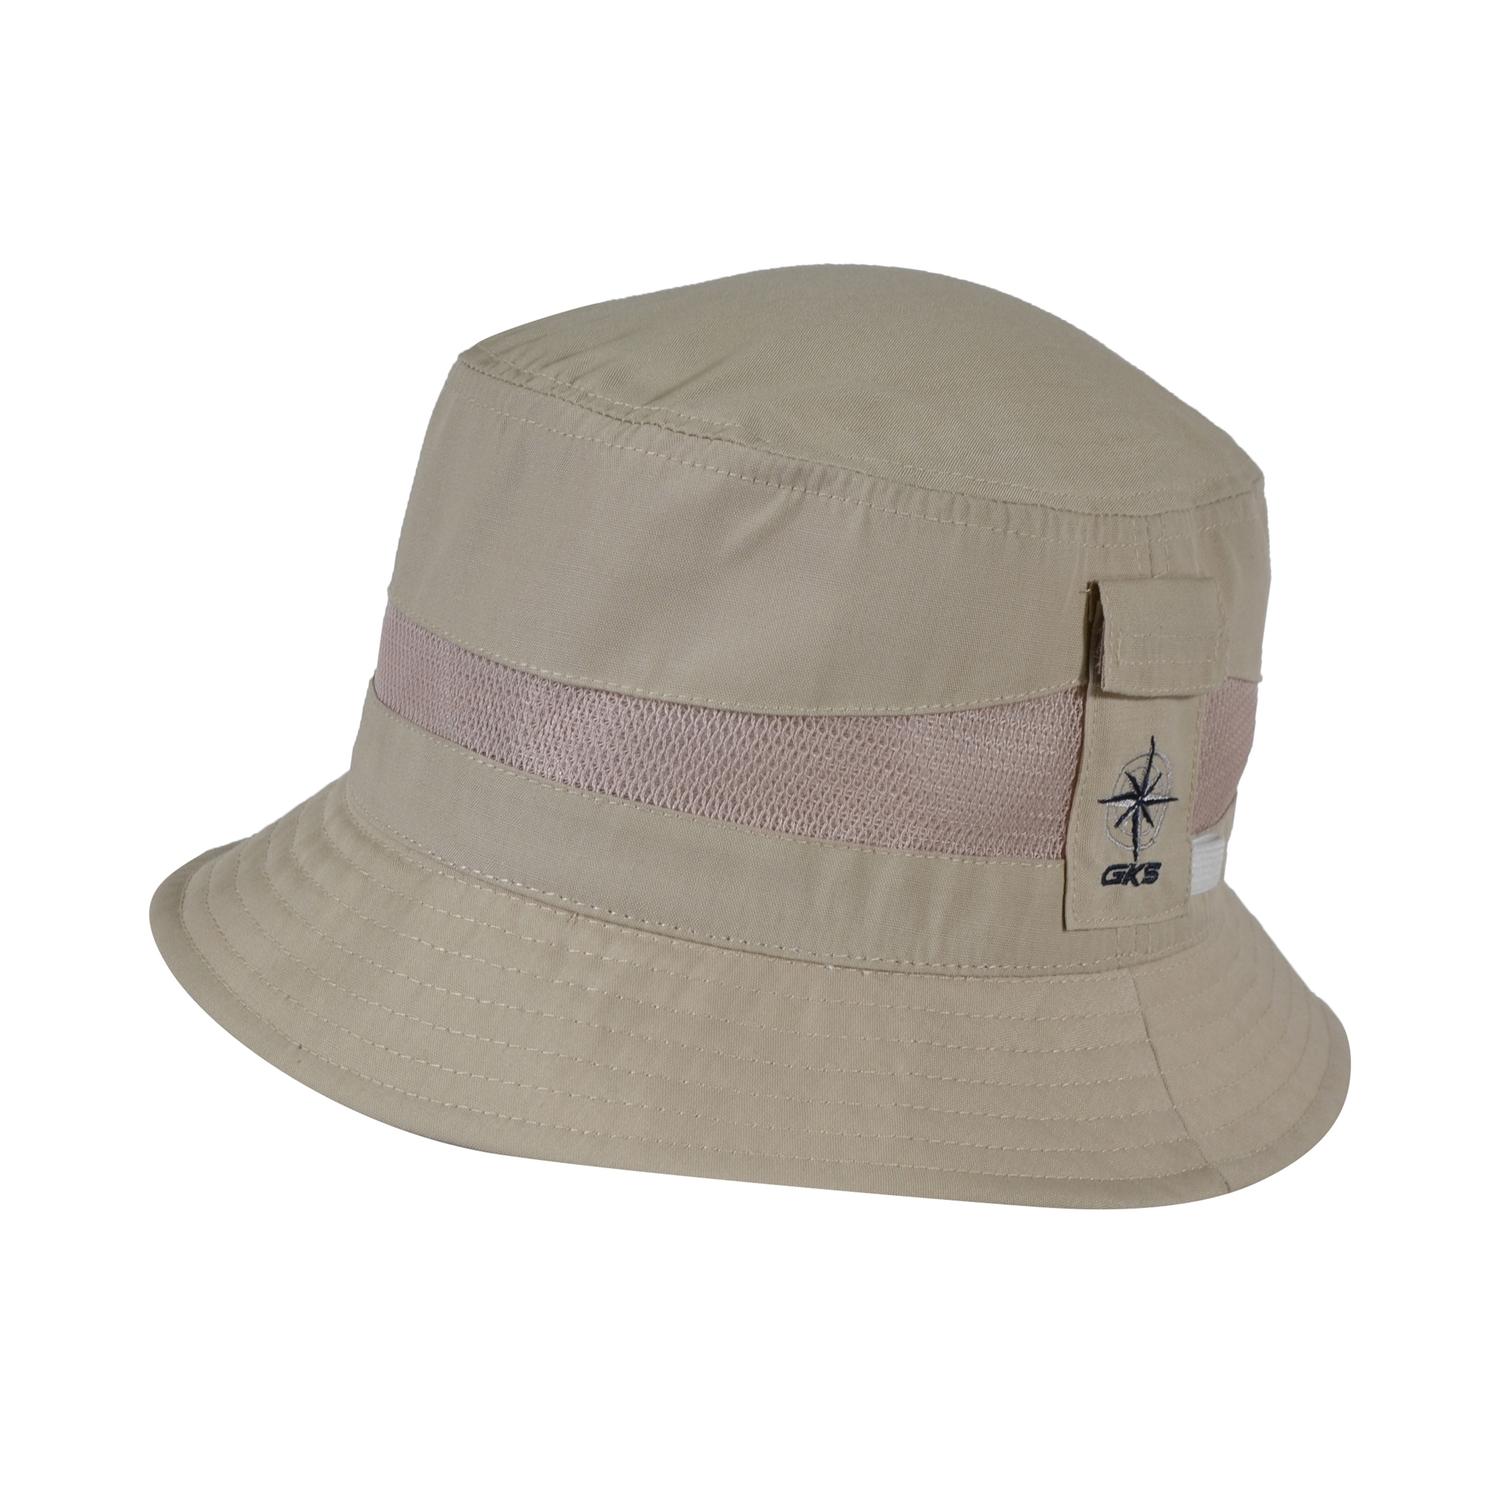 Bucket hat-Mesh and Polycotton-Small pocket